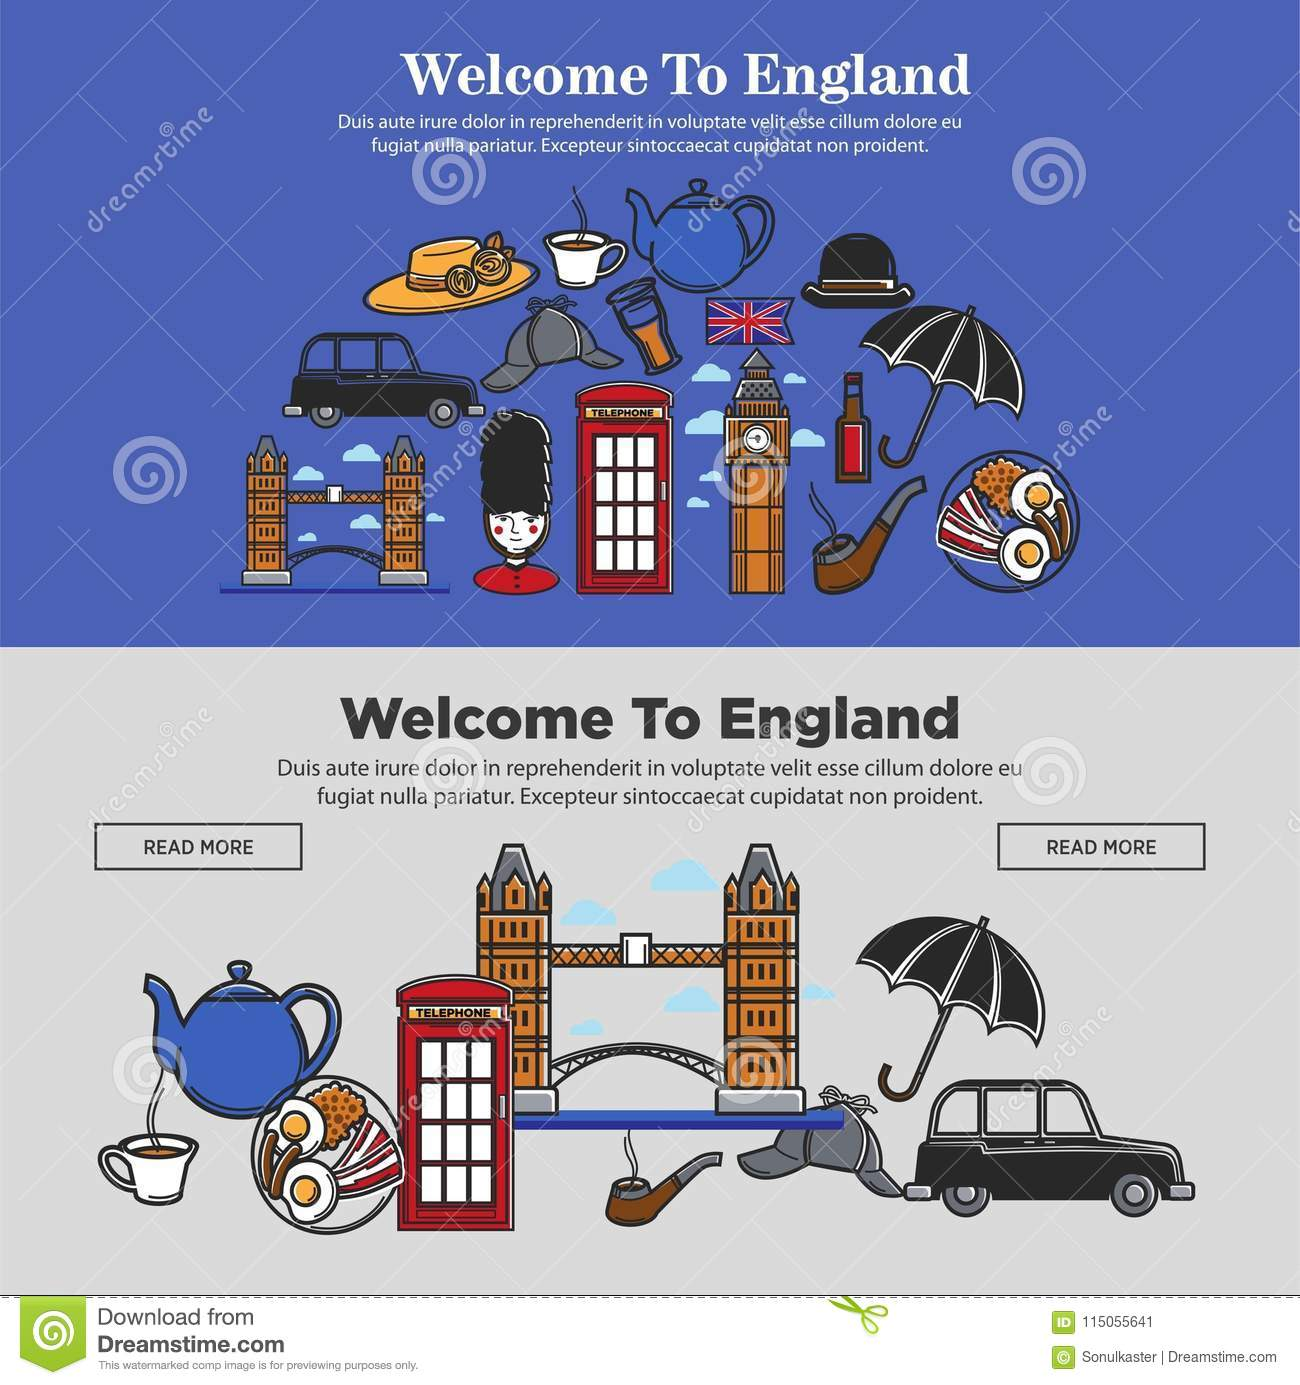 Welcome to england promotional banner with national symbols welcome to england promotional banner with national symbols ccuart Choice Image